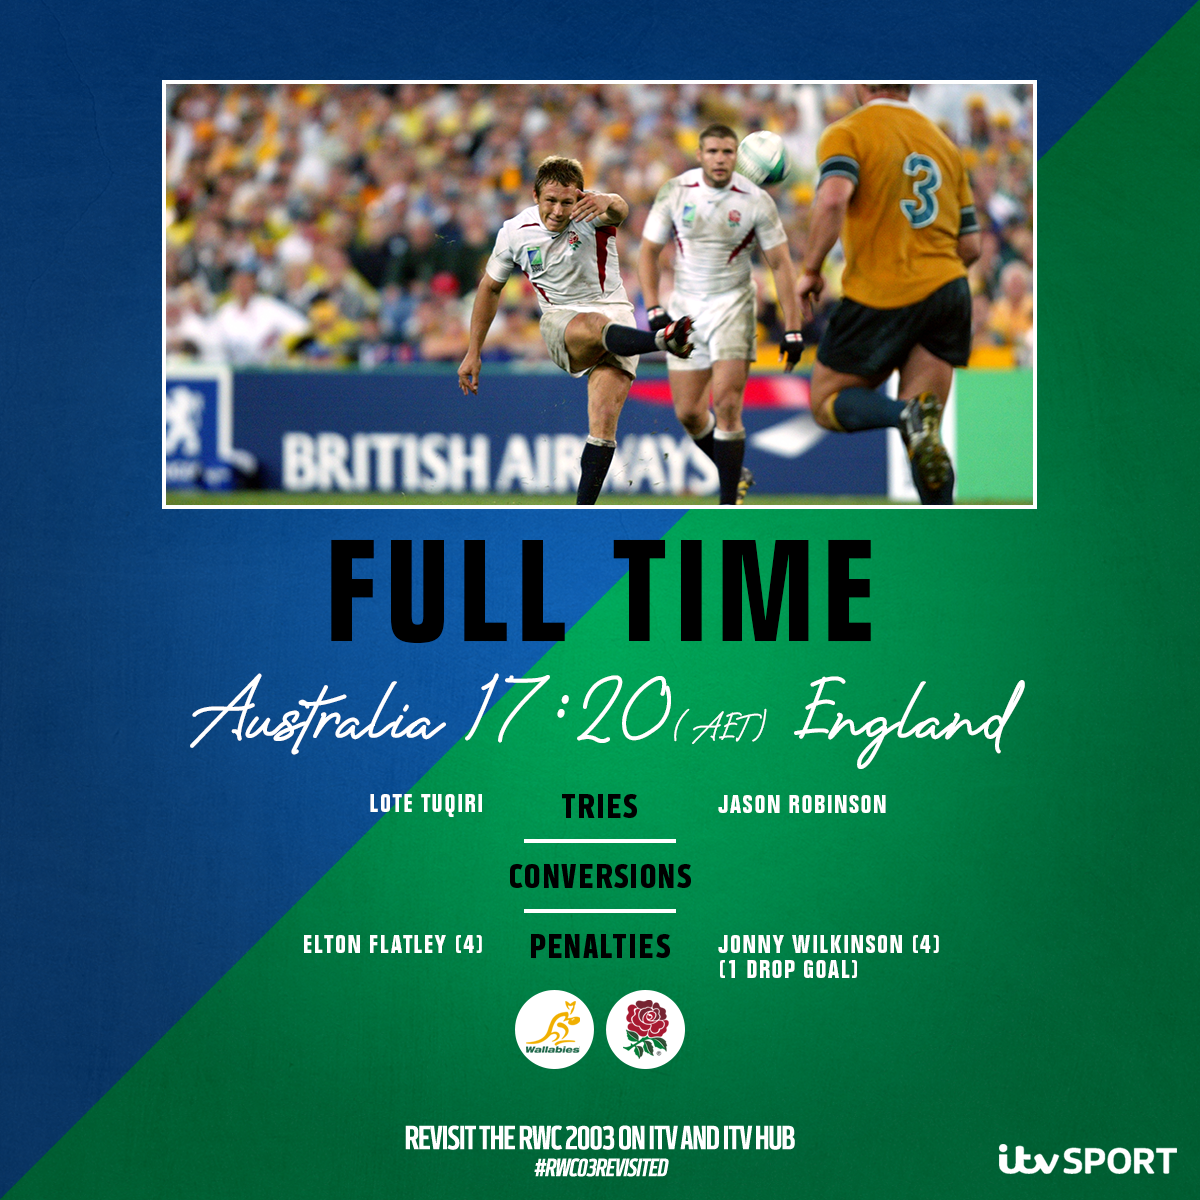 FULL TIME @EnglandRugby have won the 2003 Rugby World Cup! 🏆 A night (morning) that will never be forgotten 🏴 Watch NOW 👇 📱 bit.ly/32Hjphk 📺 ITV4 #RWC03Revisited #ITVRugby